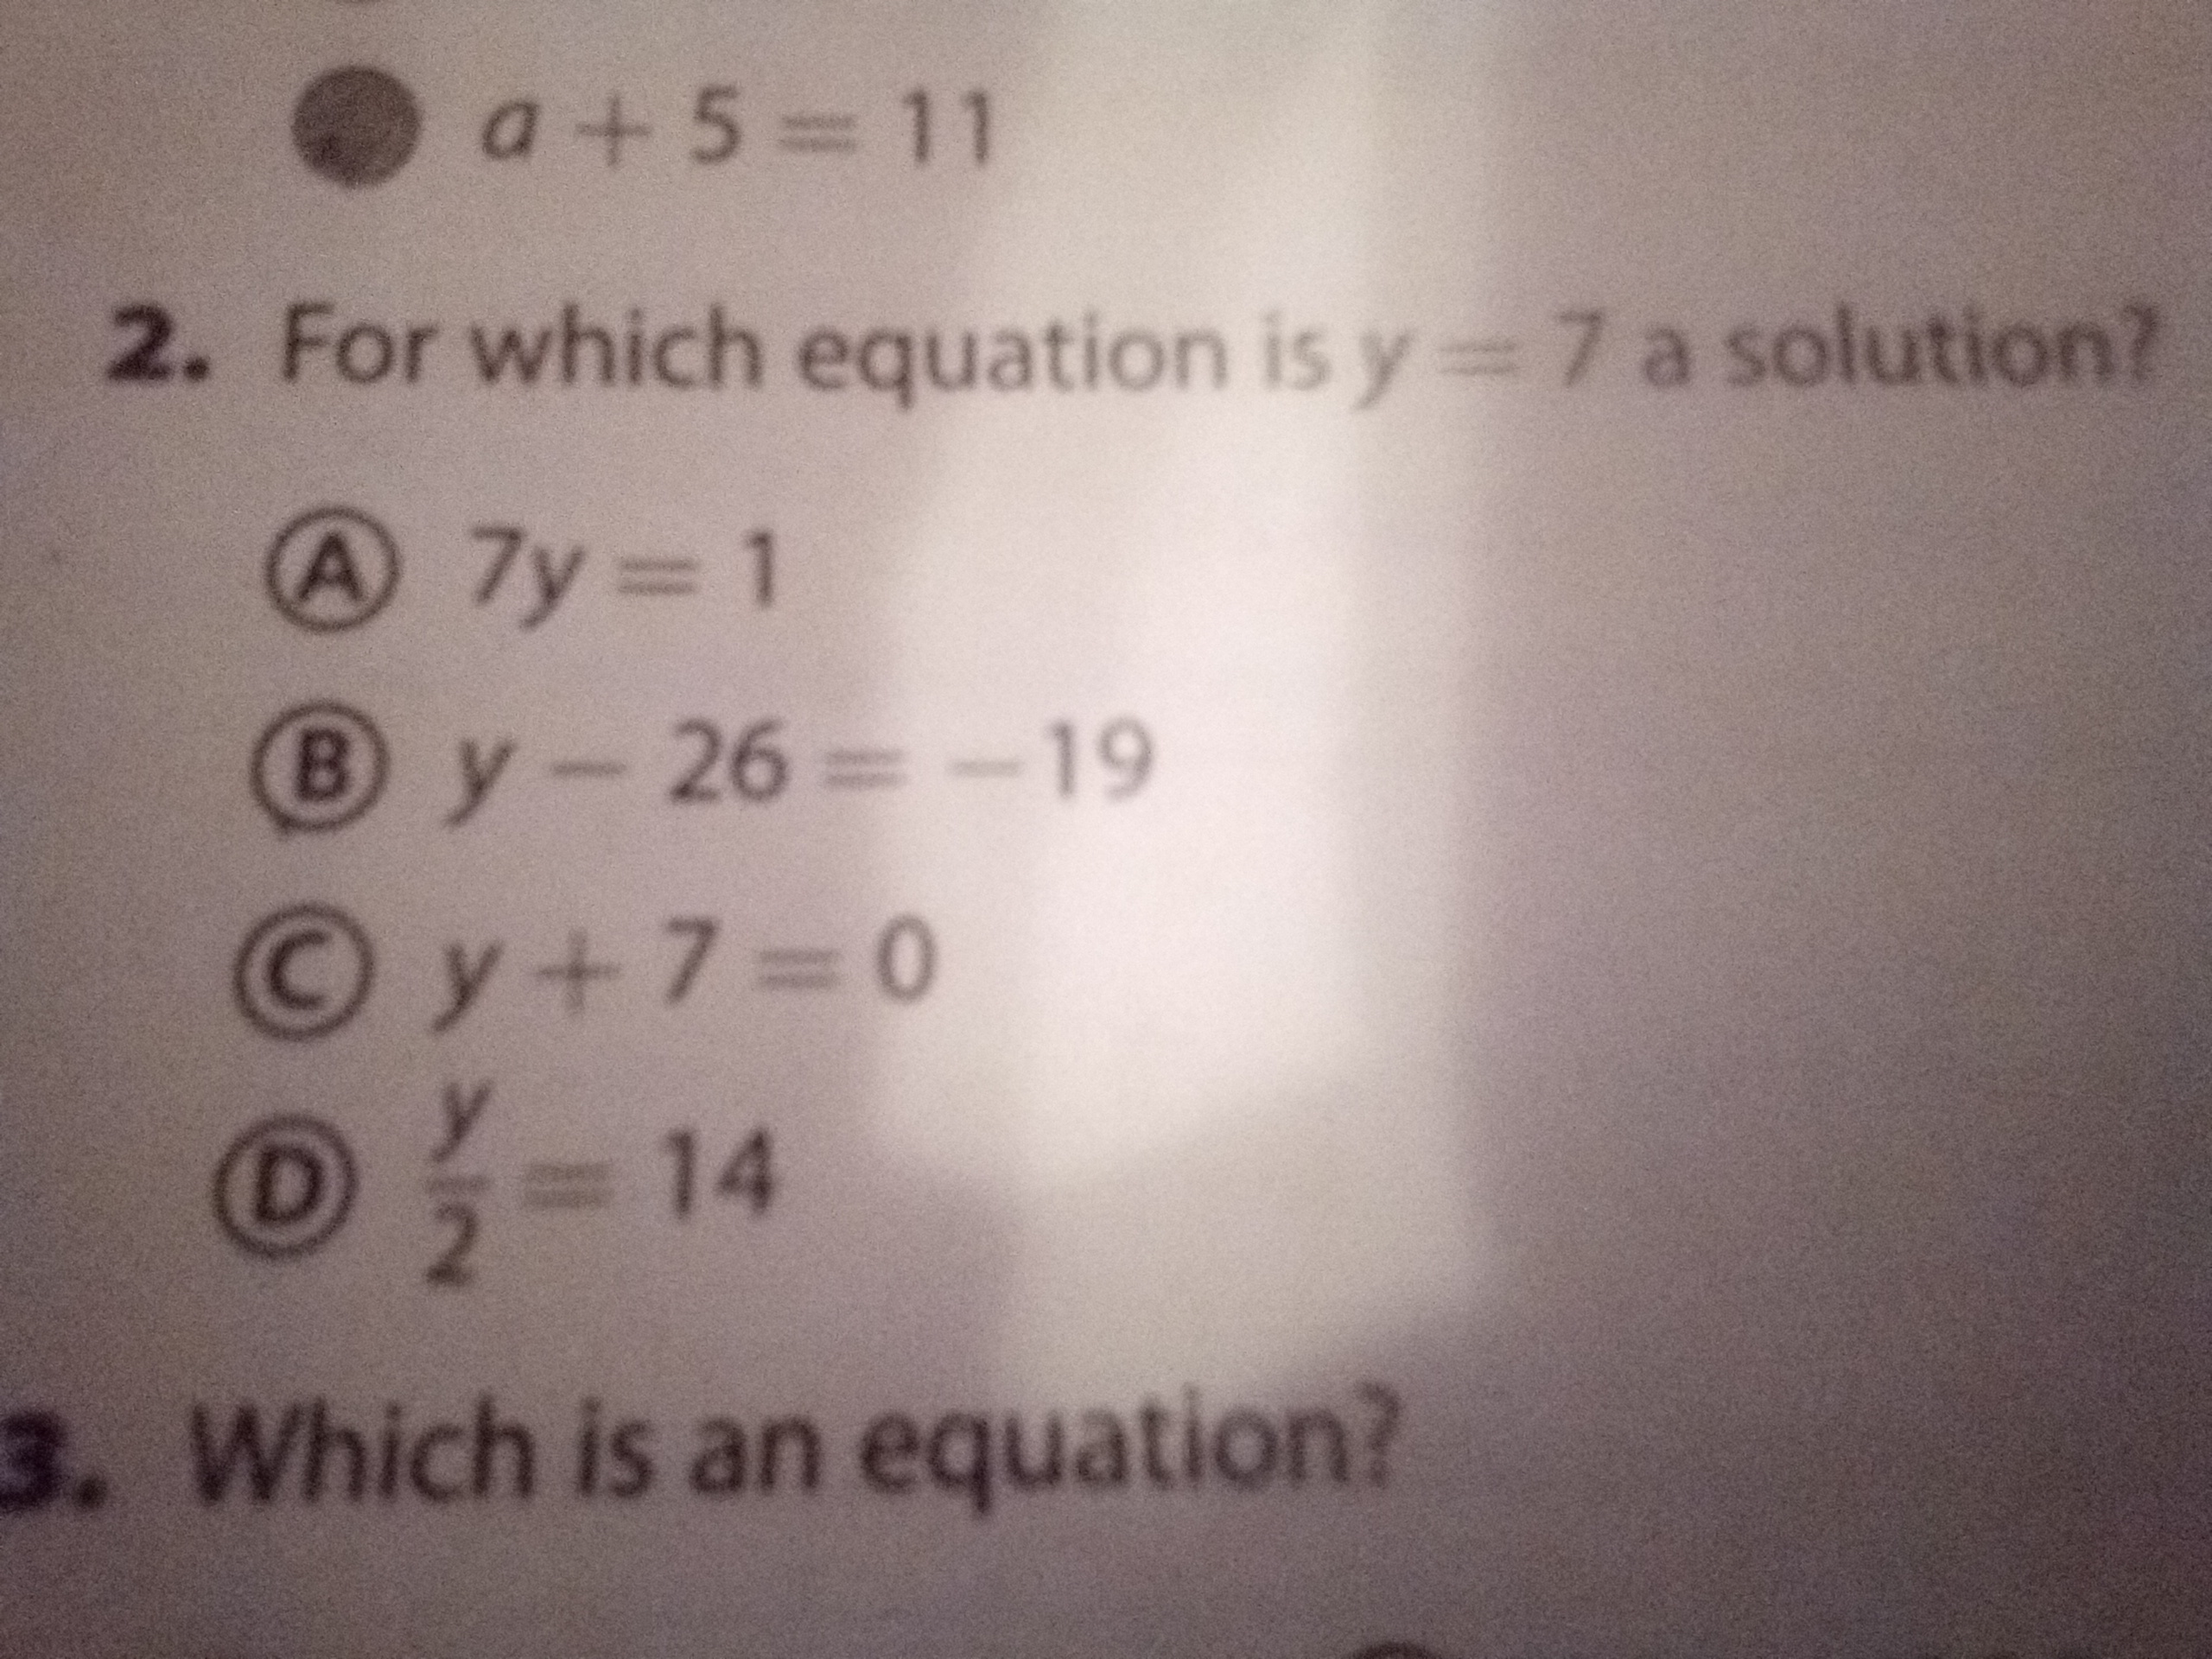 a+5=11 2. For which equation is y=7 a solution? A 7y 1 By-26=-19 Oy+7=0 O- 14 3. Which is an equation?